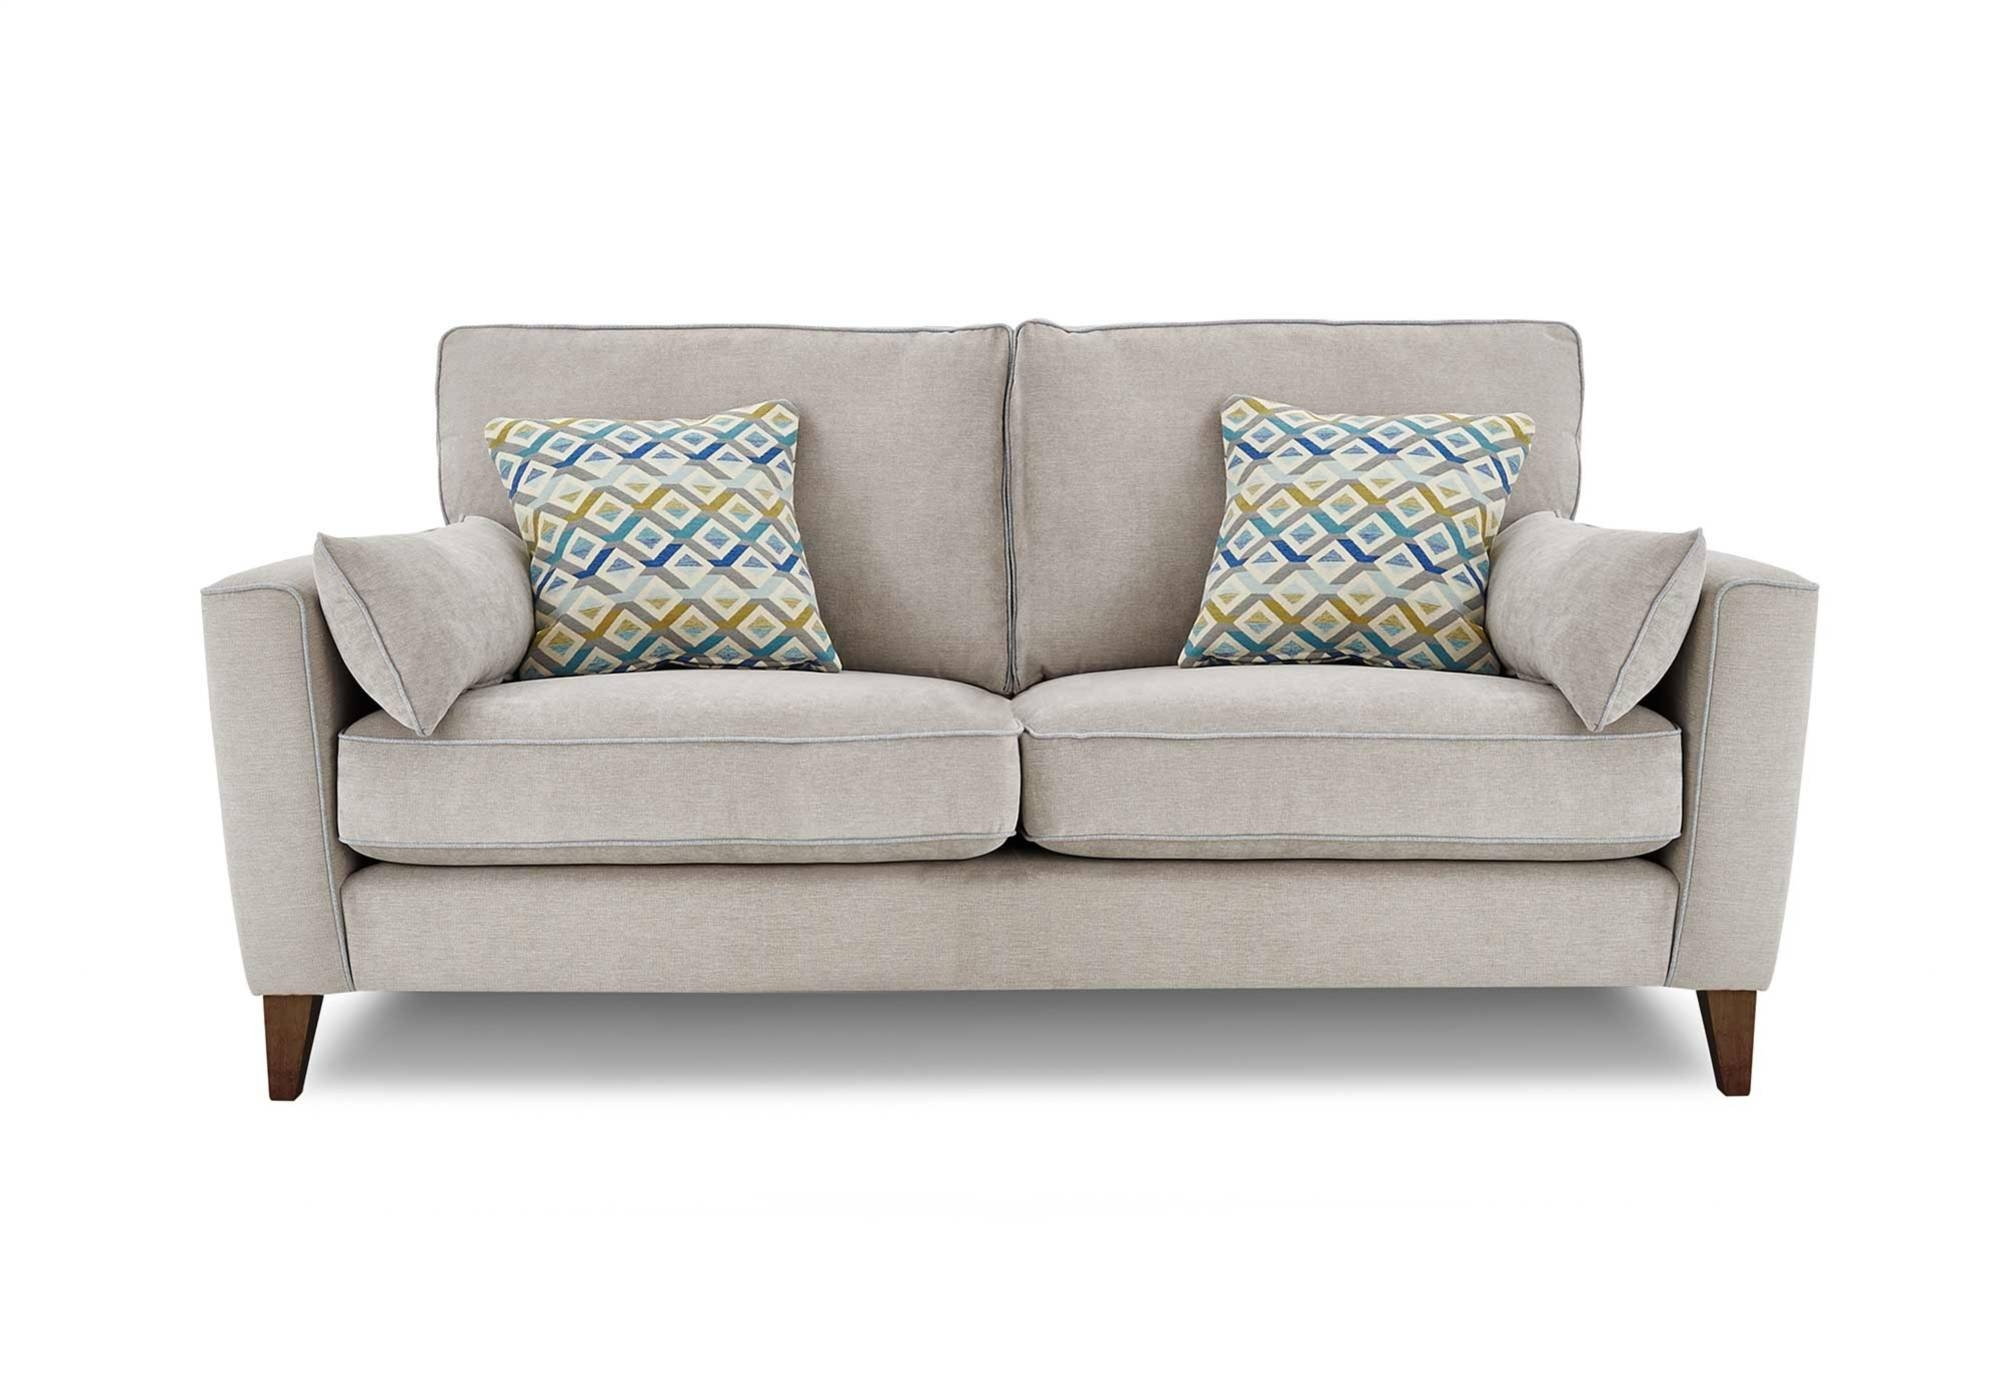 Cottage Sofas For Sale | Tehranmix Decoration inside 3 Seater Sofas For Sale (Image 7 of 30)